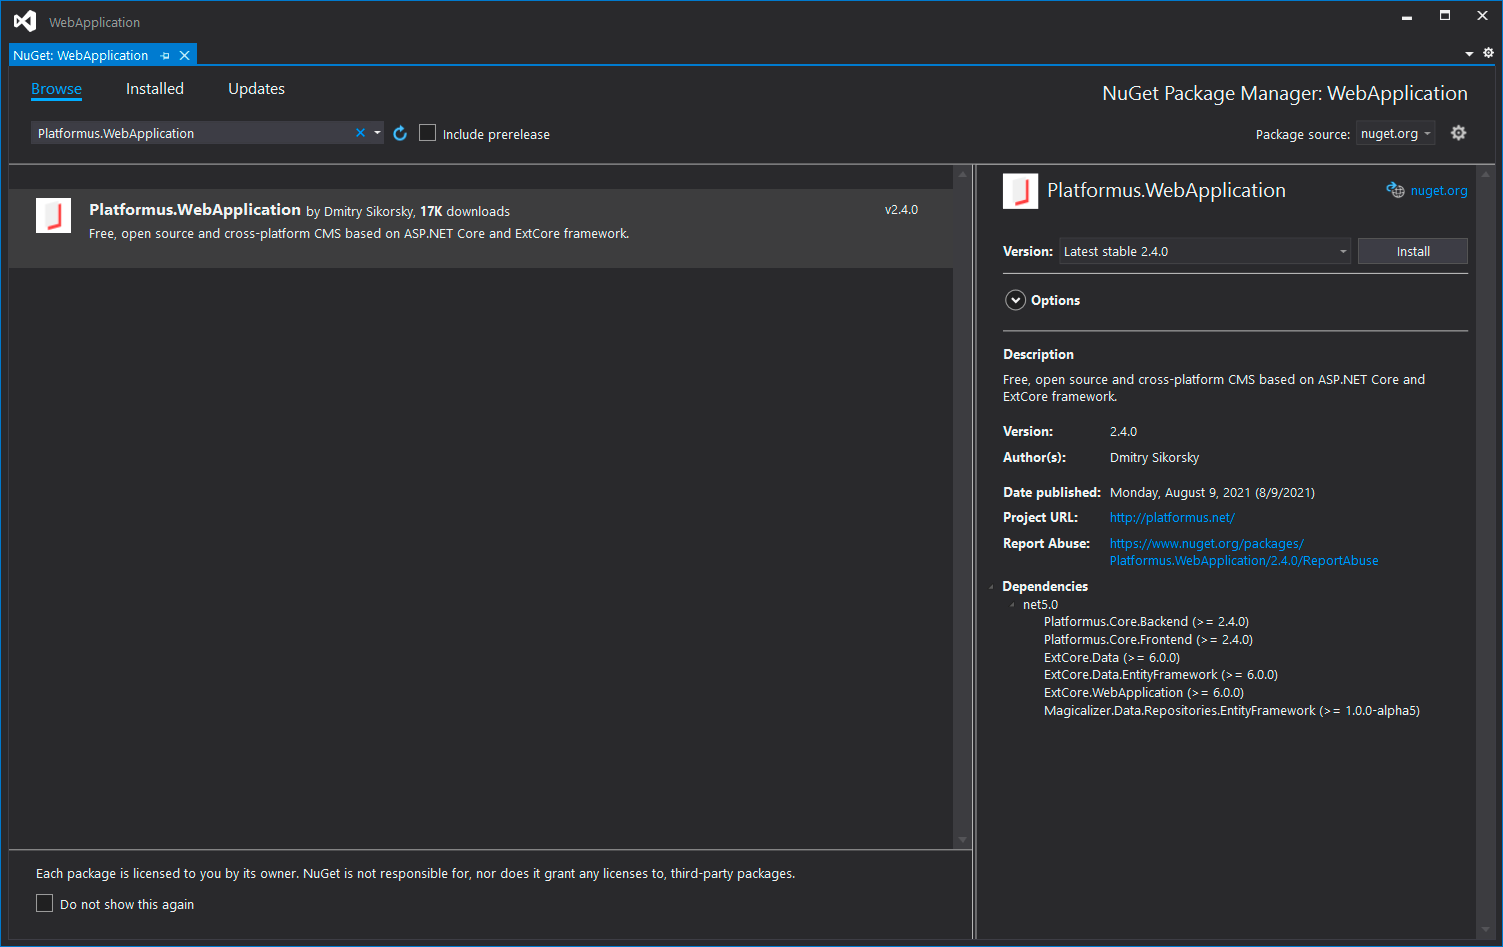 /images/getting_started/use_as_nuget_packages/3.png